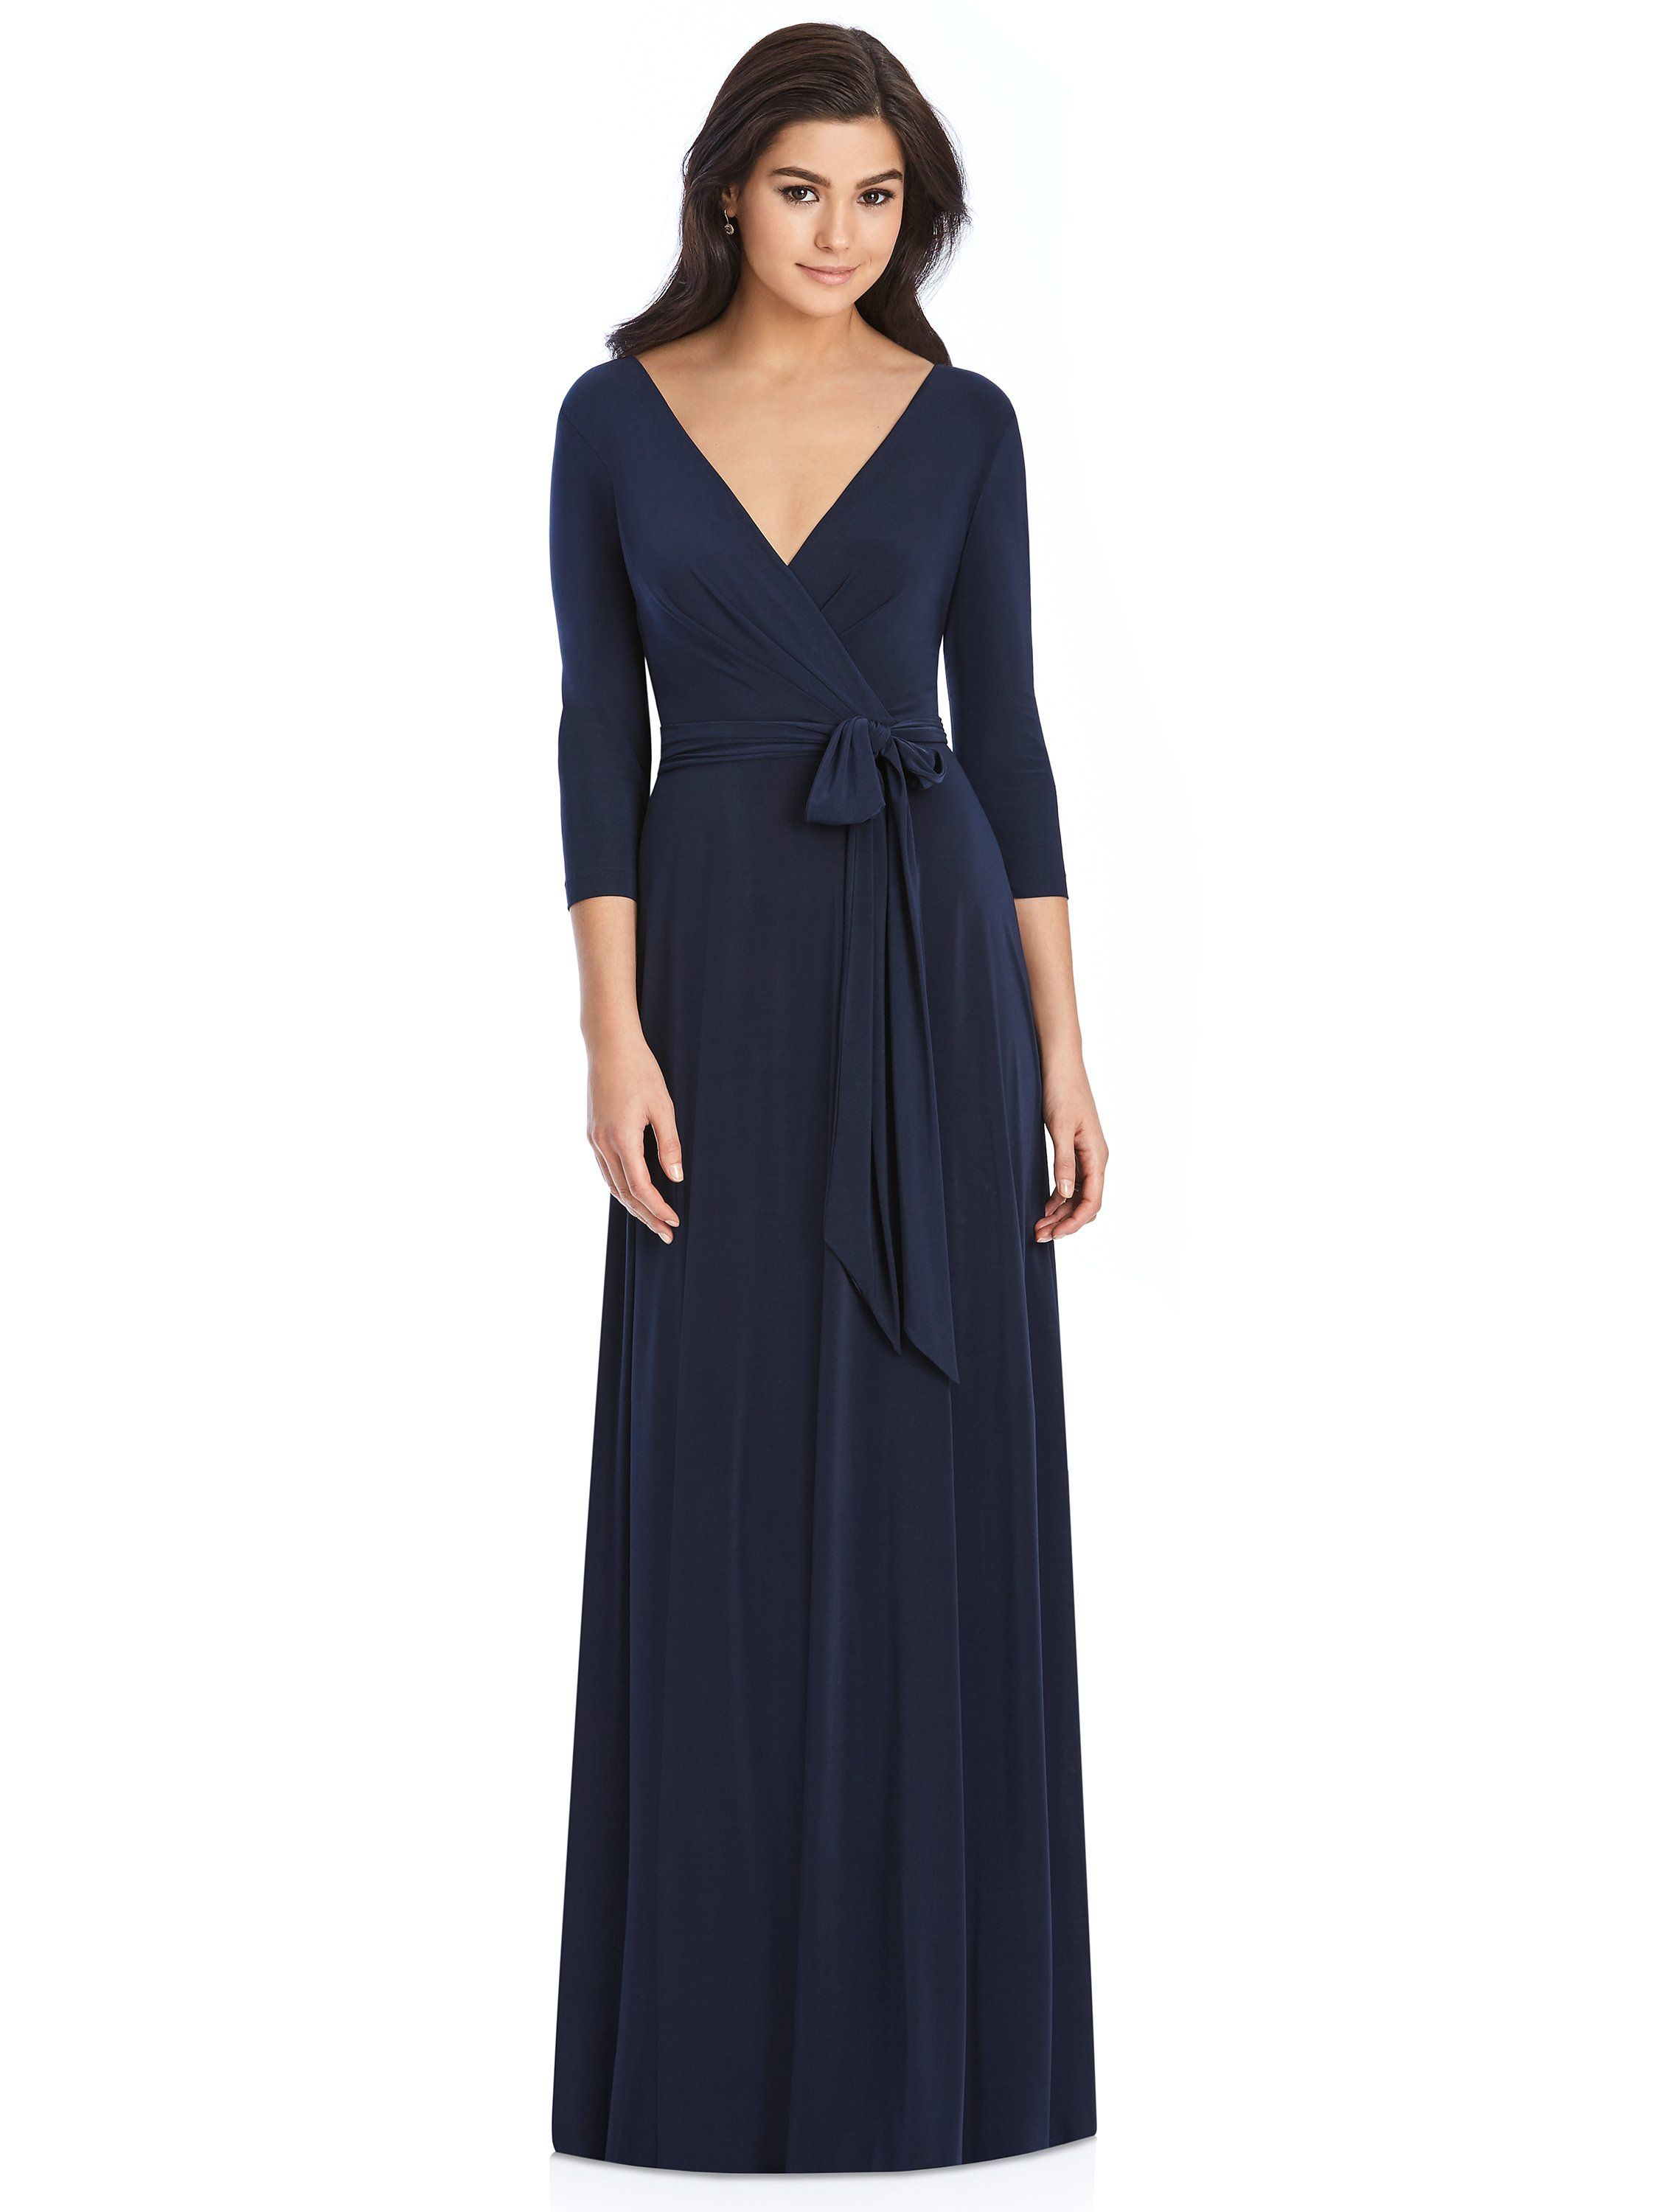 96e291b083f93 Elegant Jersey Formal Dress with Sleeves Style 3027 | Fashion ...